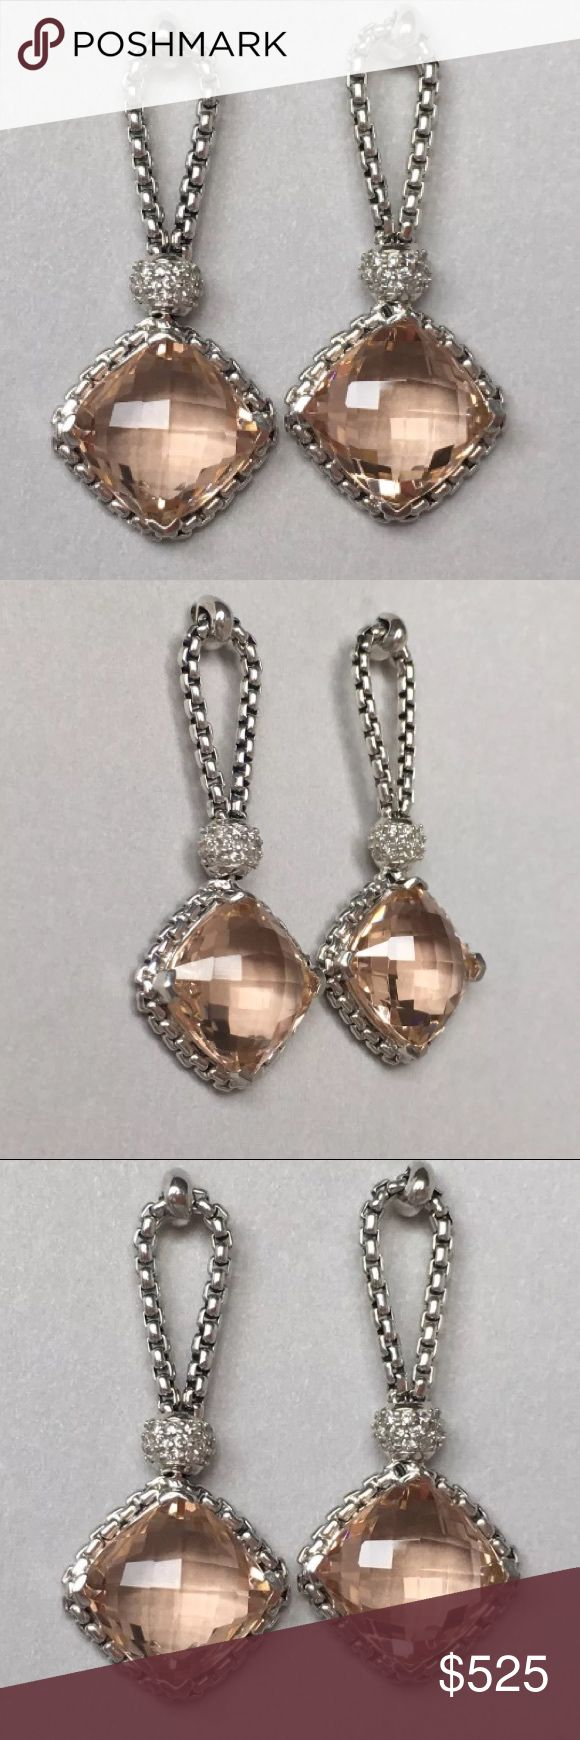 David Yurman Cushion on Point Morganite Earrings So gorgeous! These are such a great set! They go with everything from an evening gown to jeans to business attire. David Yurman Jewelry Earrings